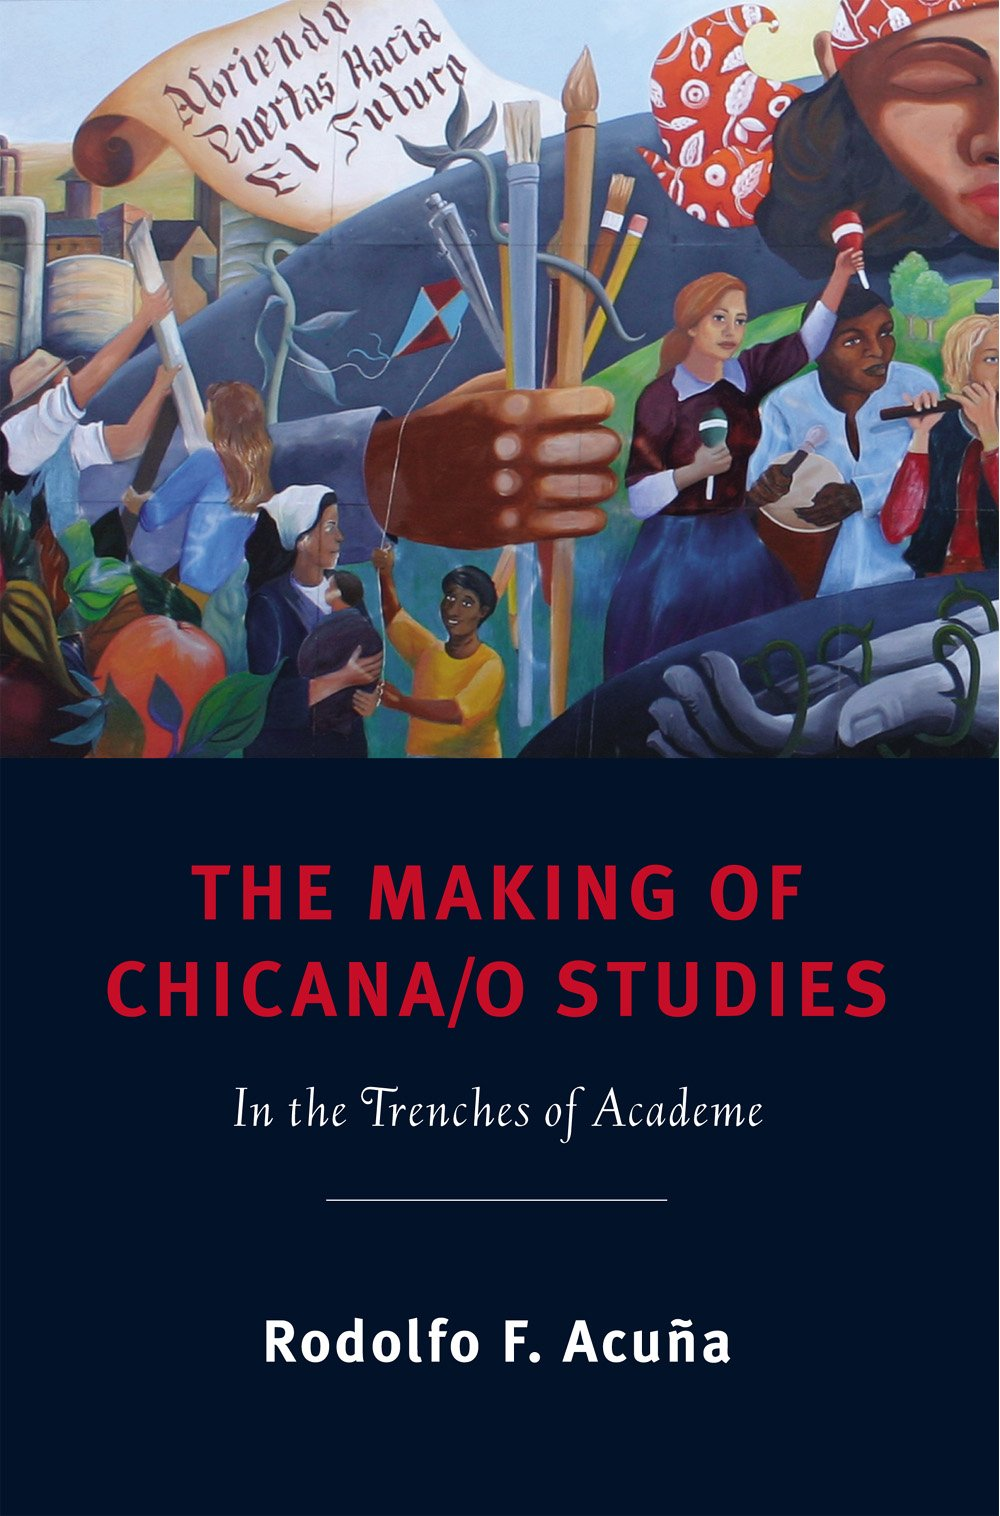 The Making of Chicana/o Studies: In the Trenches of Academe by Rodolfo F. Acuña